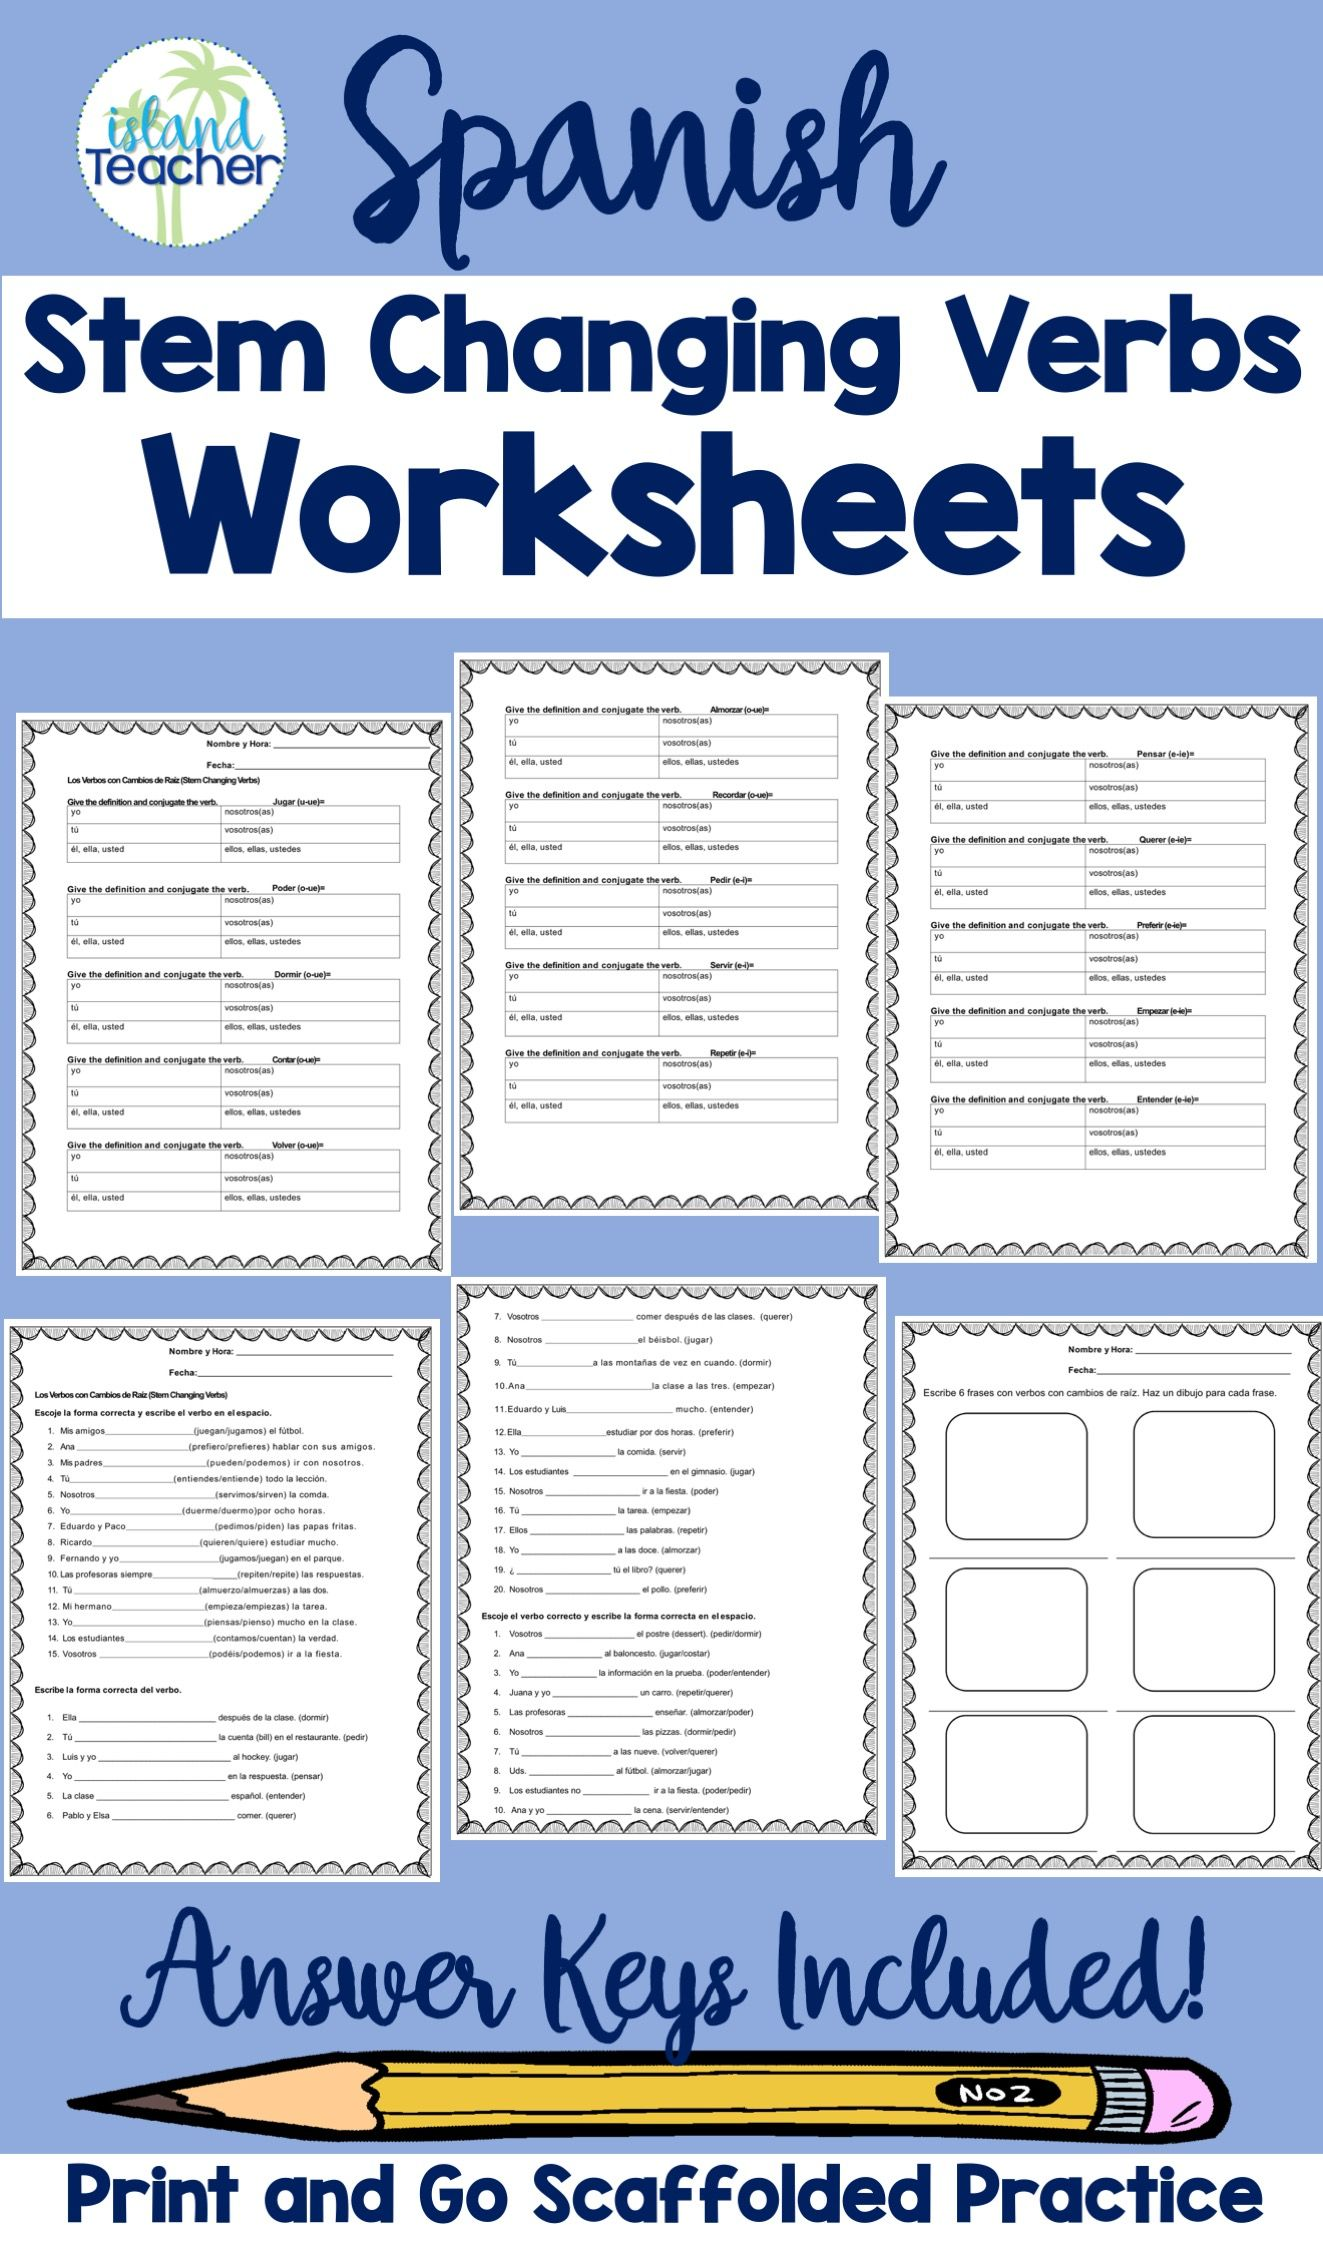 Spanish Stem Changing Verbs Worksheets In